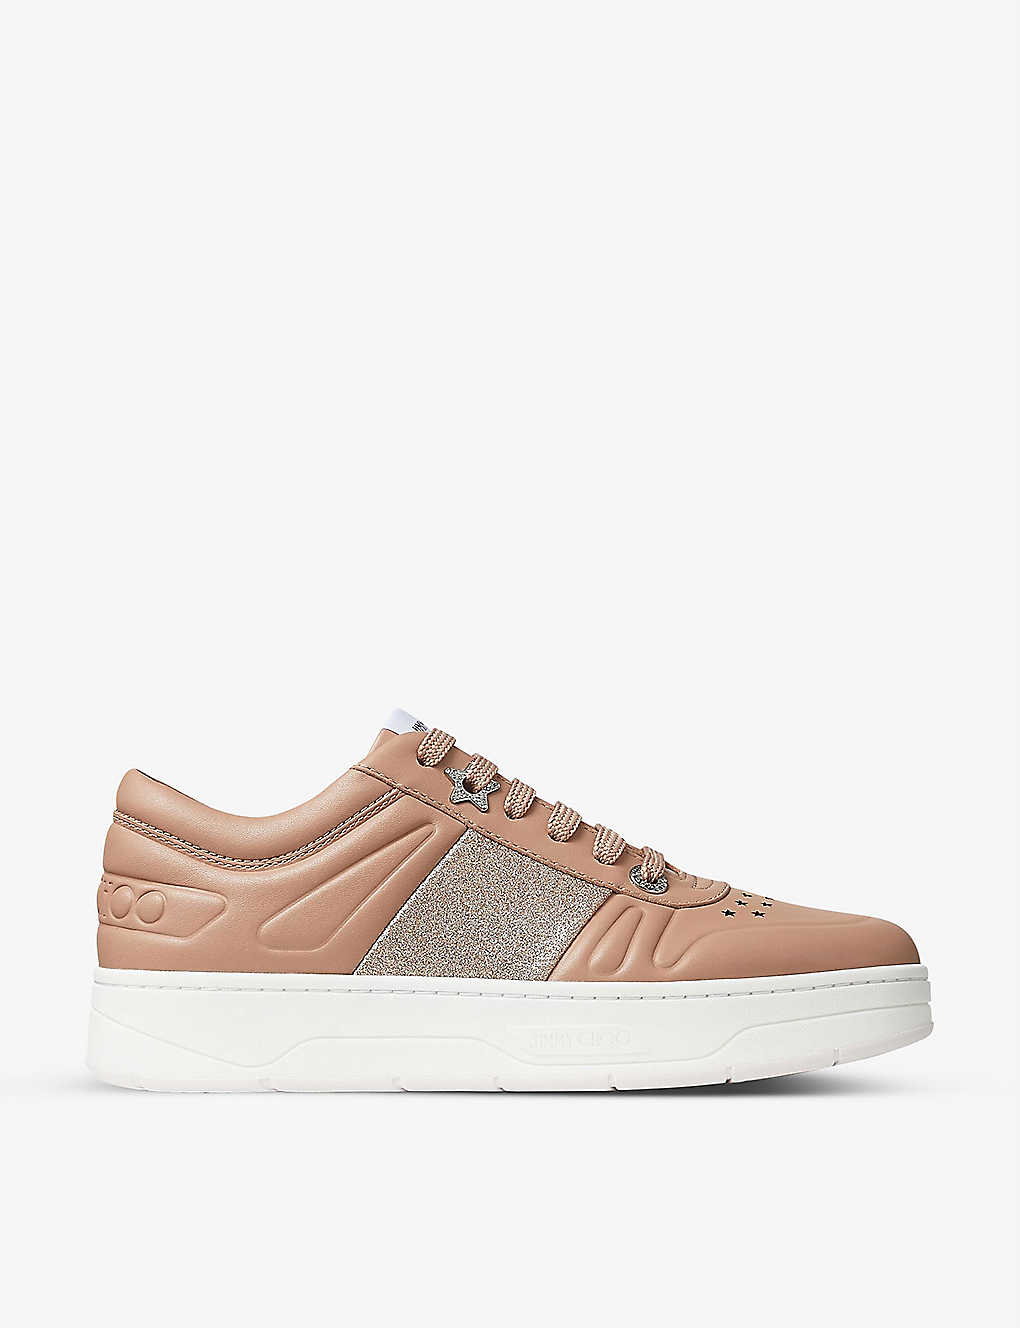 Jimmy Choo Leathers HAWAII GLITTER-PANELLED LEATHER TRAINERS